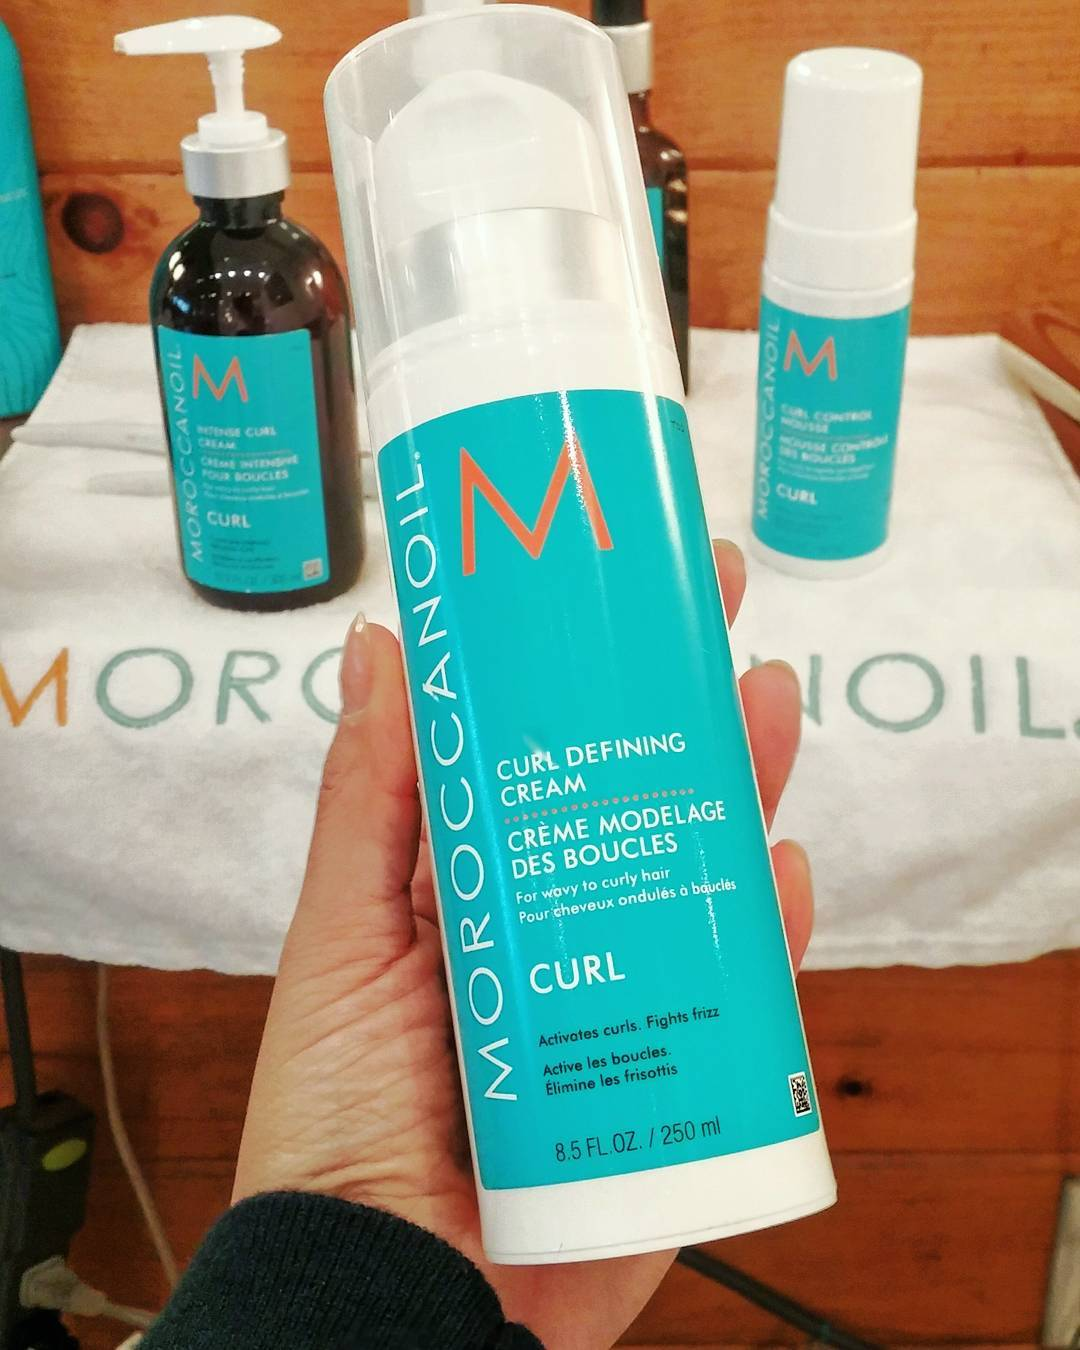 Got curls? Then get this: latest launch from @moroccanoil is all abt those waves & curls! The curl defining cream is both styling heaven & next-day revival! Lots more products in the line up - check them out online! #ArganEveryDay